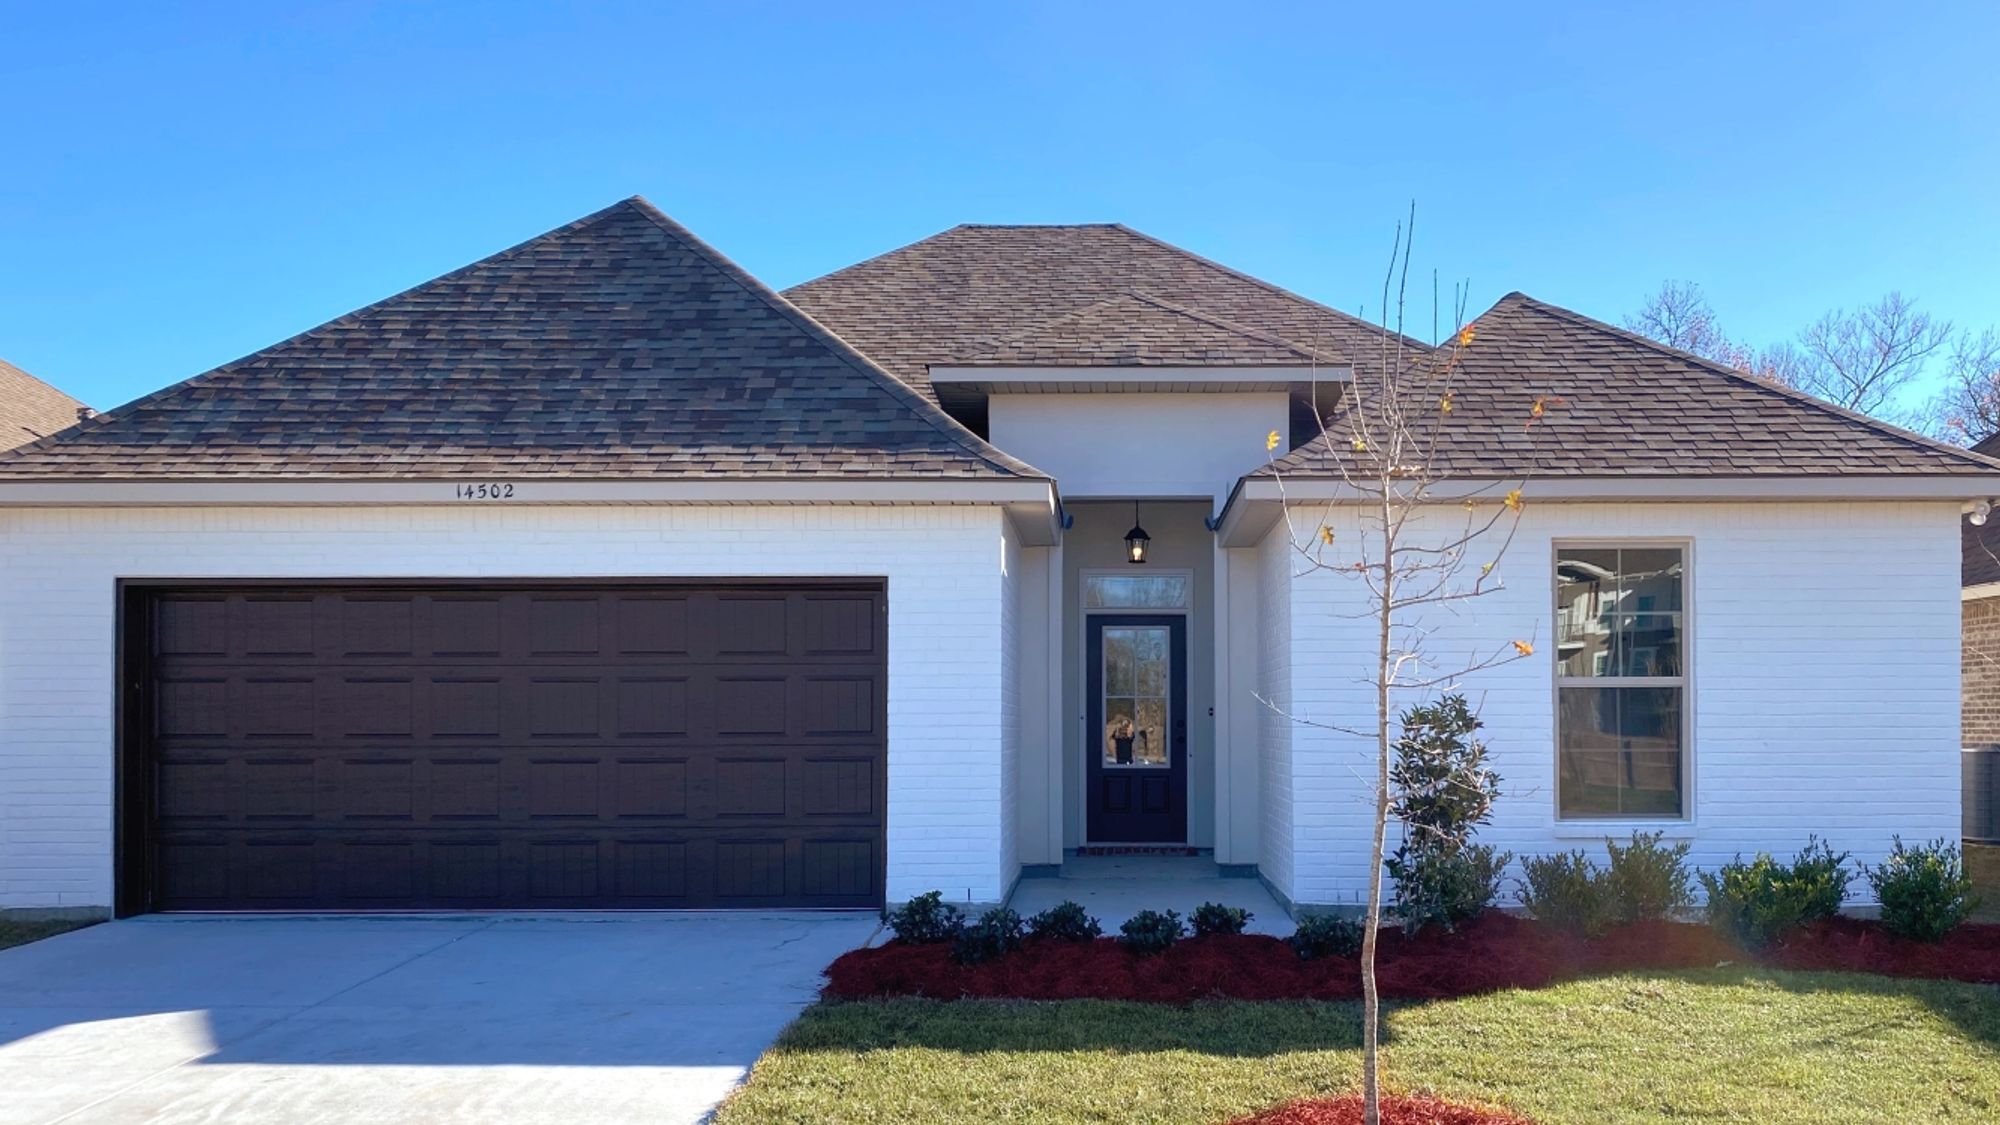 Front View - Lagrasse IV A - Silver Oaks Community - DSLD Homes Gonzales